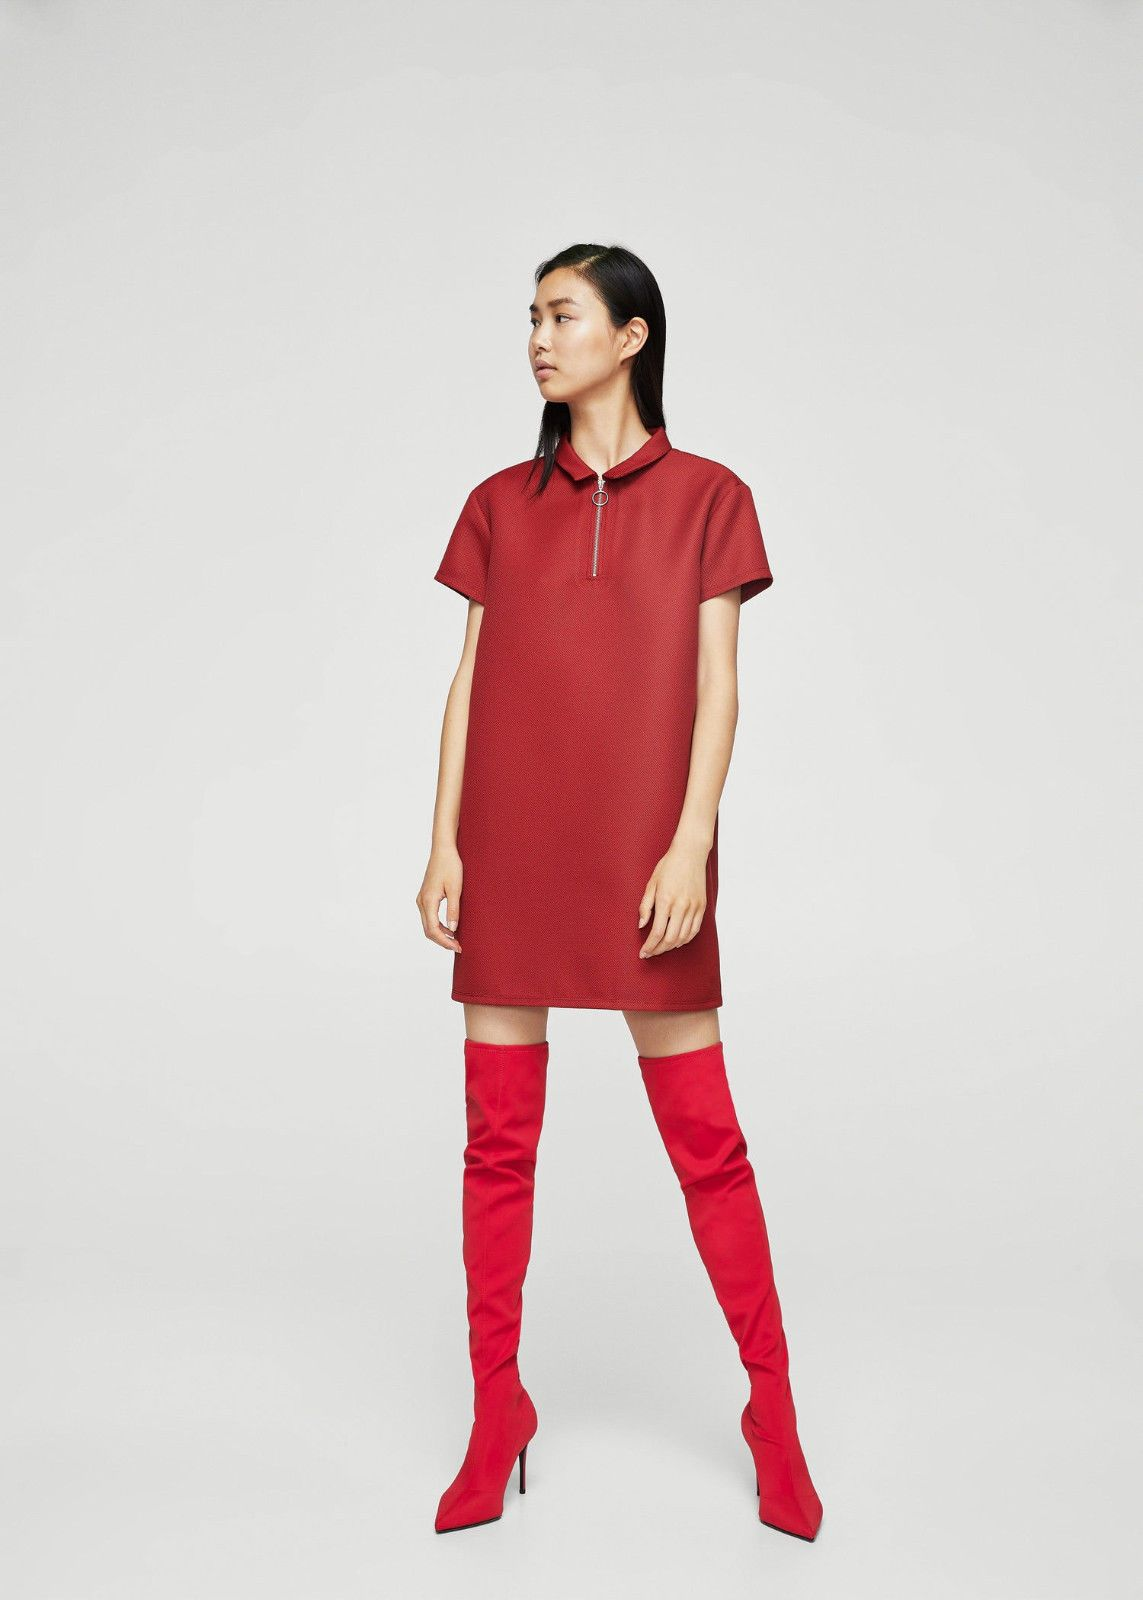 91c7367e653 Mango (Zara Group) Xl Stretch Red Over The Knee Thigh Tall Boots Stiletto  Heel